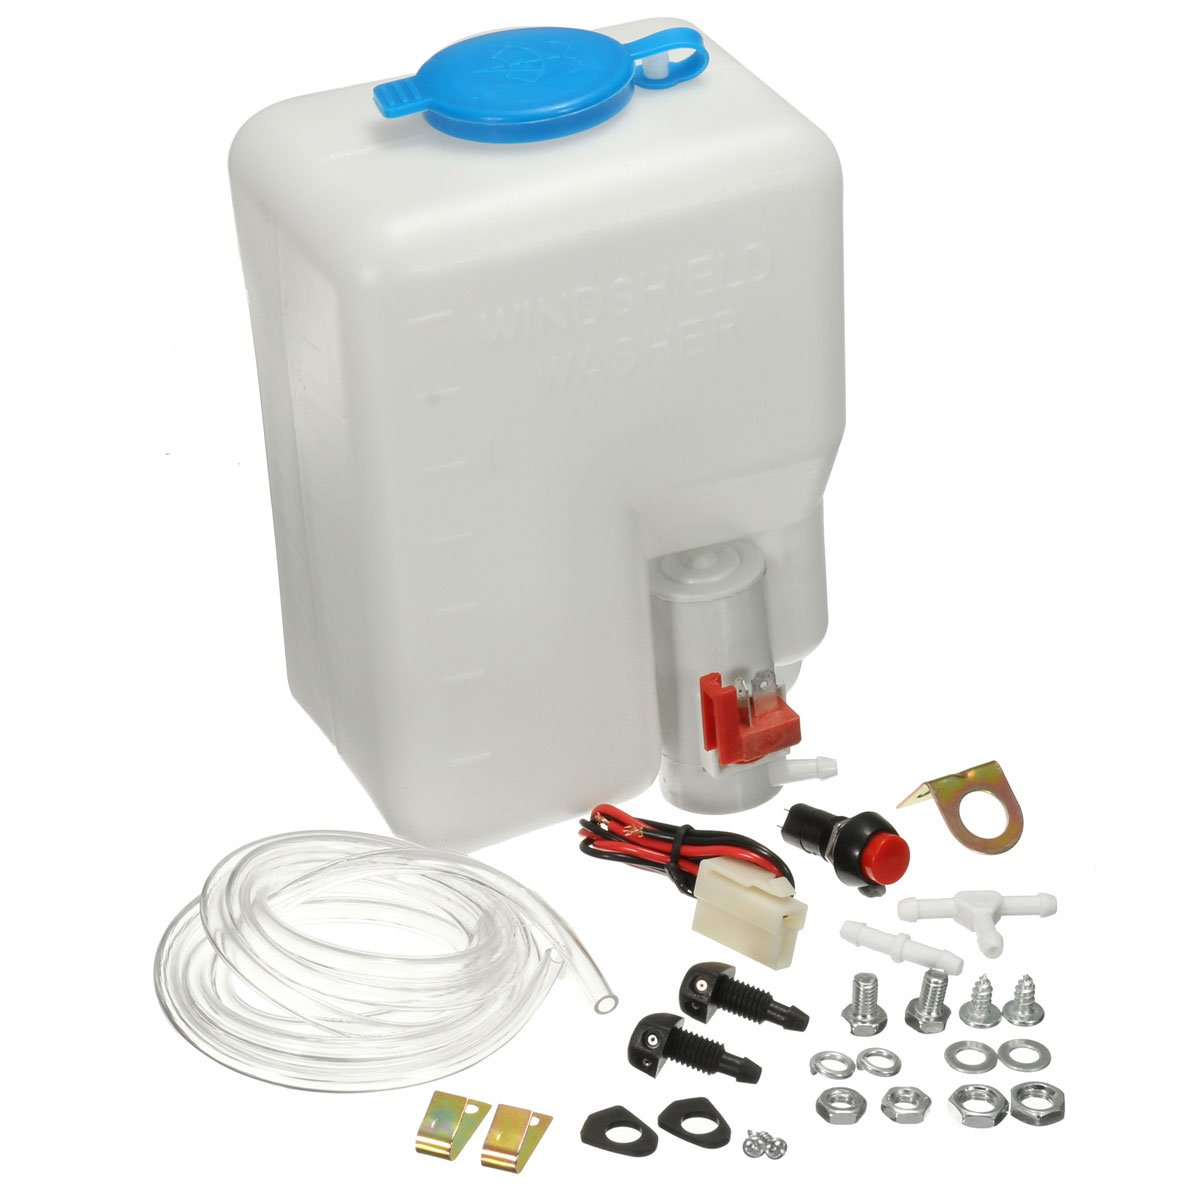 Audew 12V Universal Car Windshield Washer Pump Washer Bottle Kit Washer System with Pump Jet Button Switch 160186